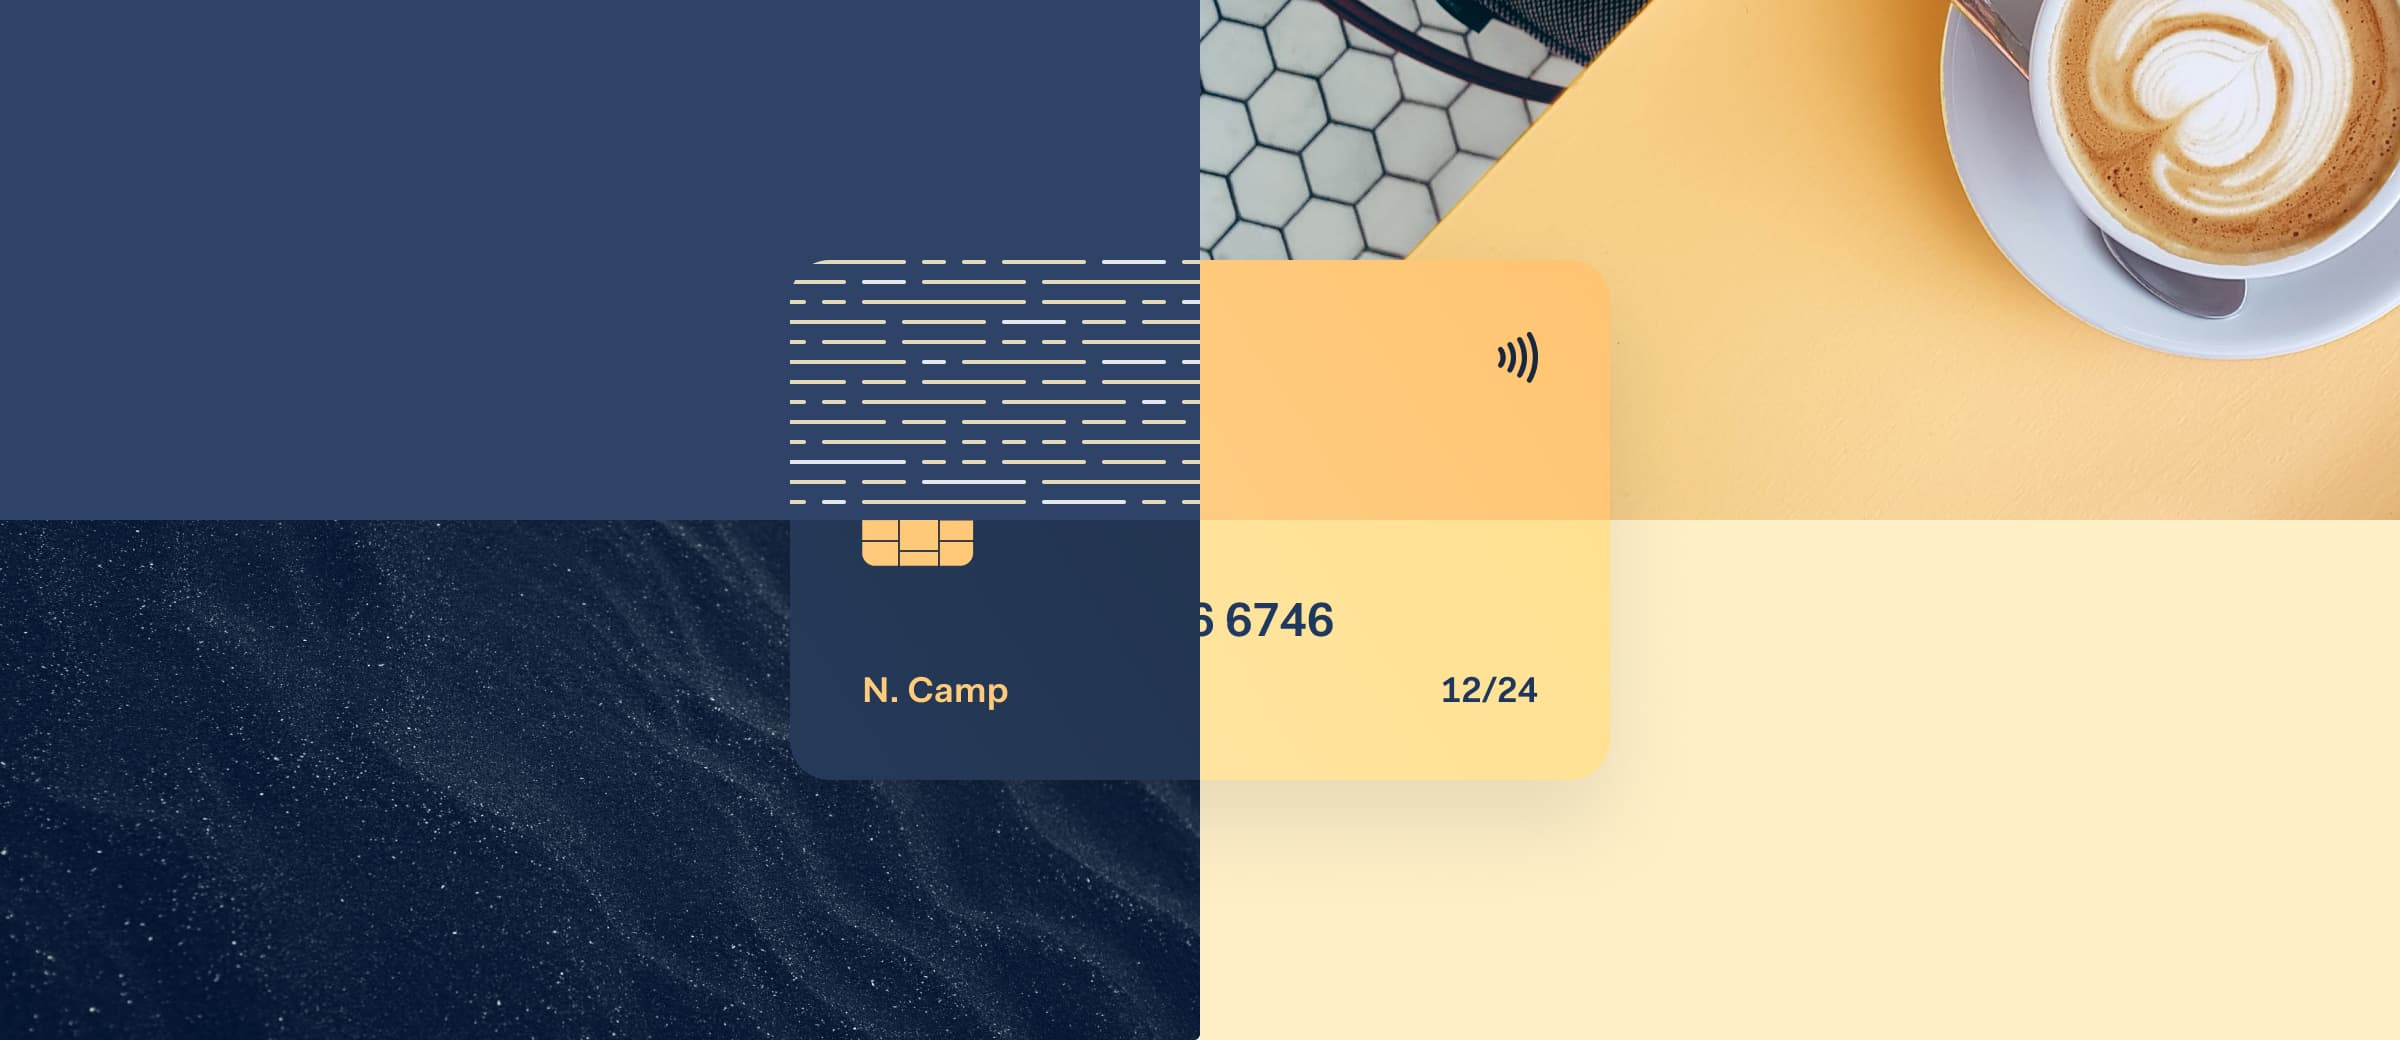 Physical payment card with different types of branding